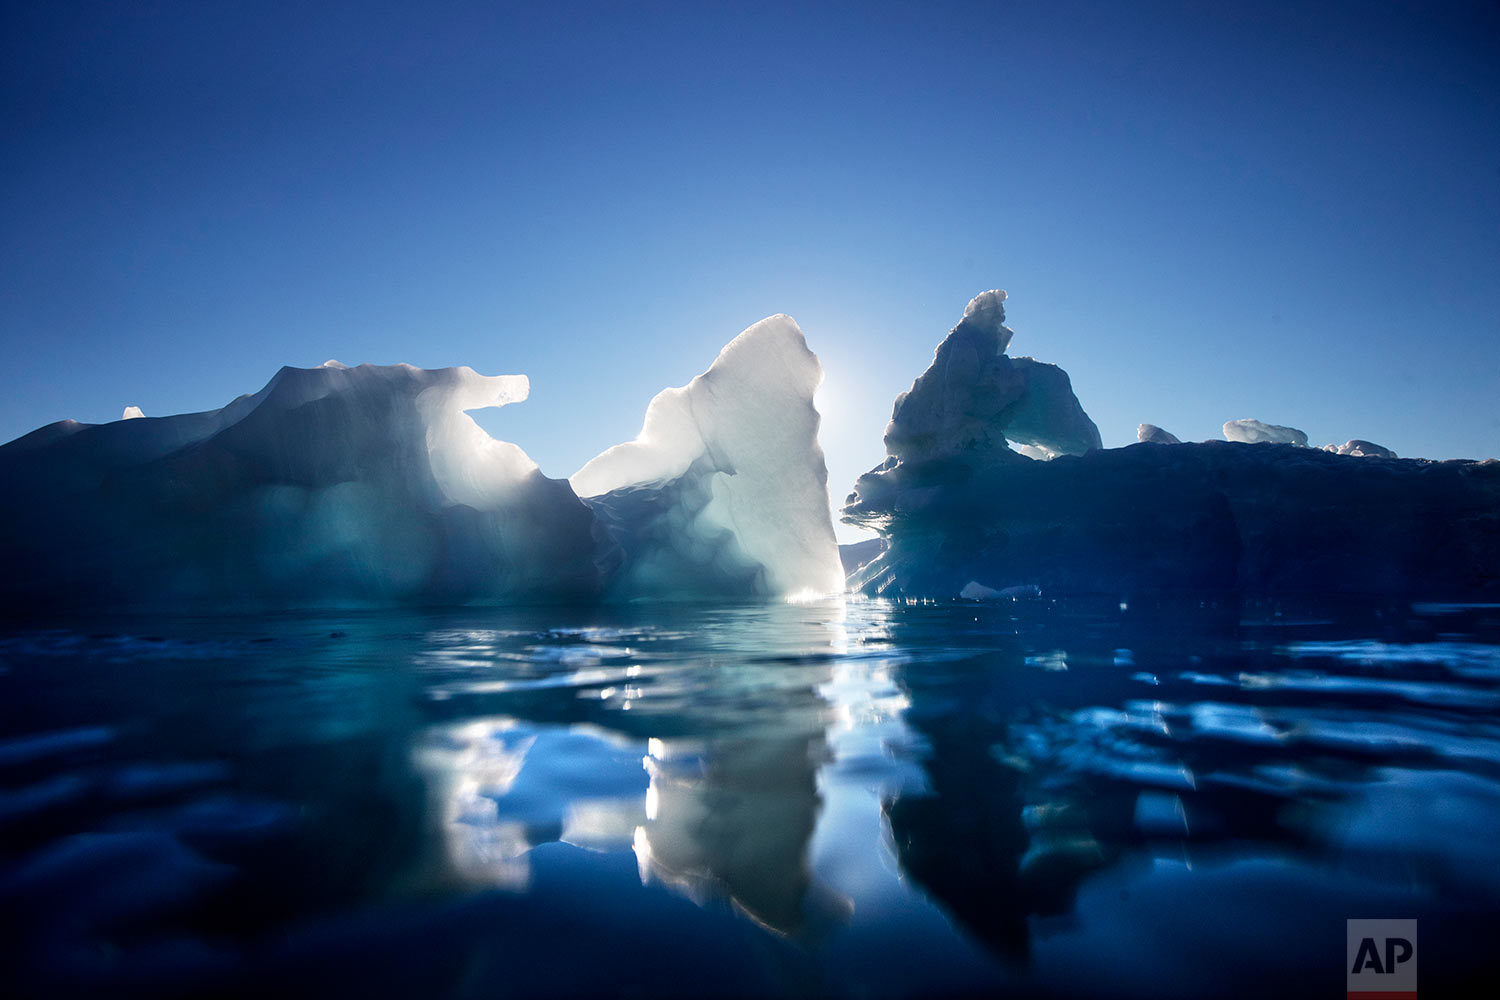 Icebergs float in the Nuup Kangerlua Fjord near Nuuk in southwestern Greenland, Tuesday Aug. 1, 2017. (AP Photo/David Goldman)